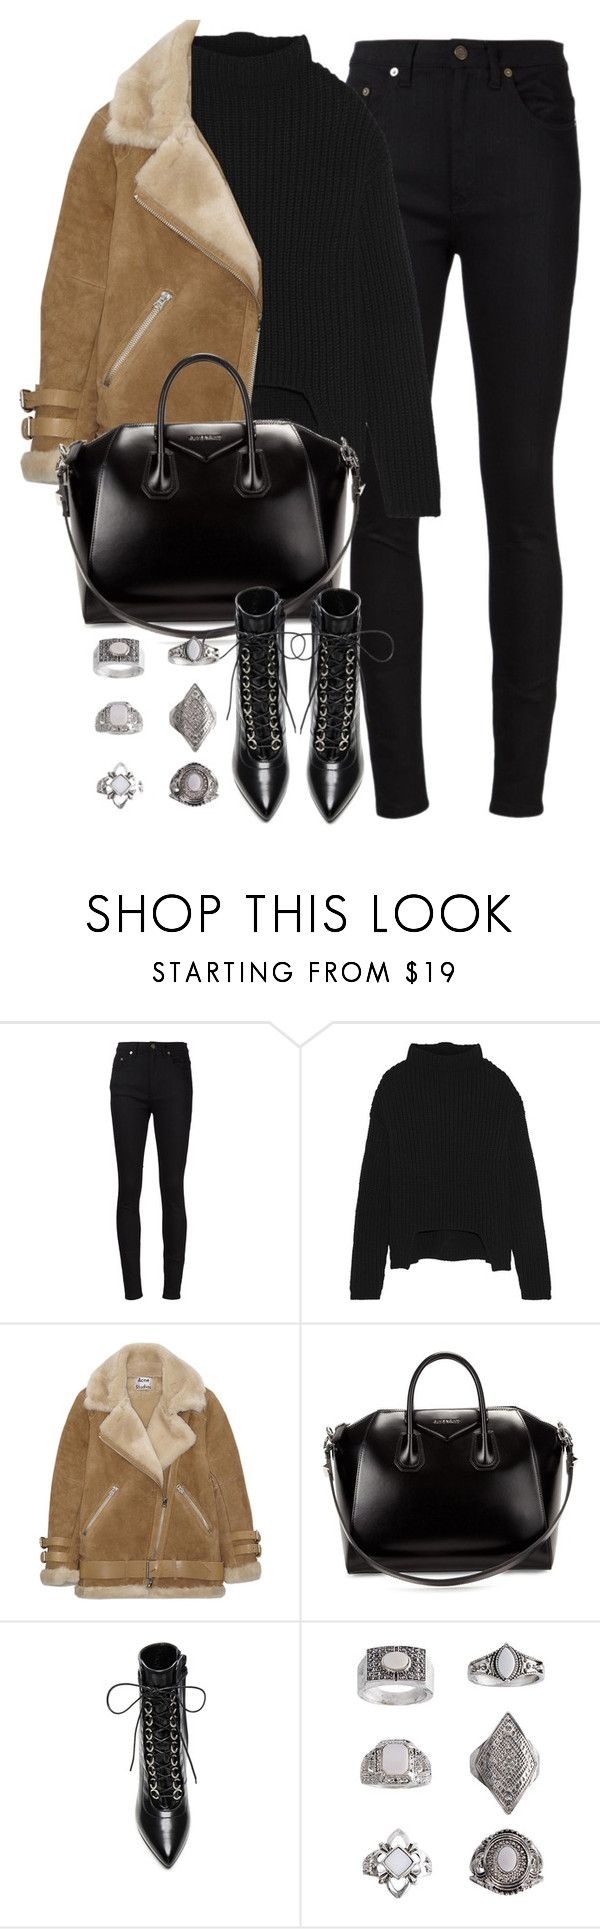 """Untitled #4100"" by maddie1128 ❤ liked on Polyvore featuring Yves Saint Laurent, Rick Owens, Acne Studios, Givenchy and Topshop"